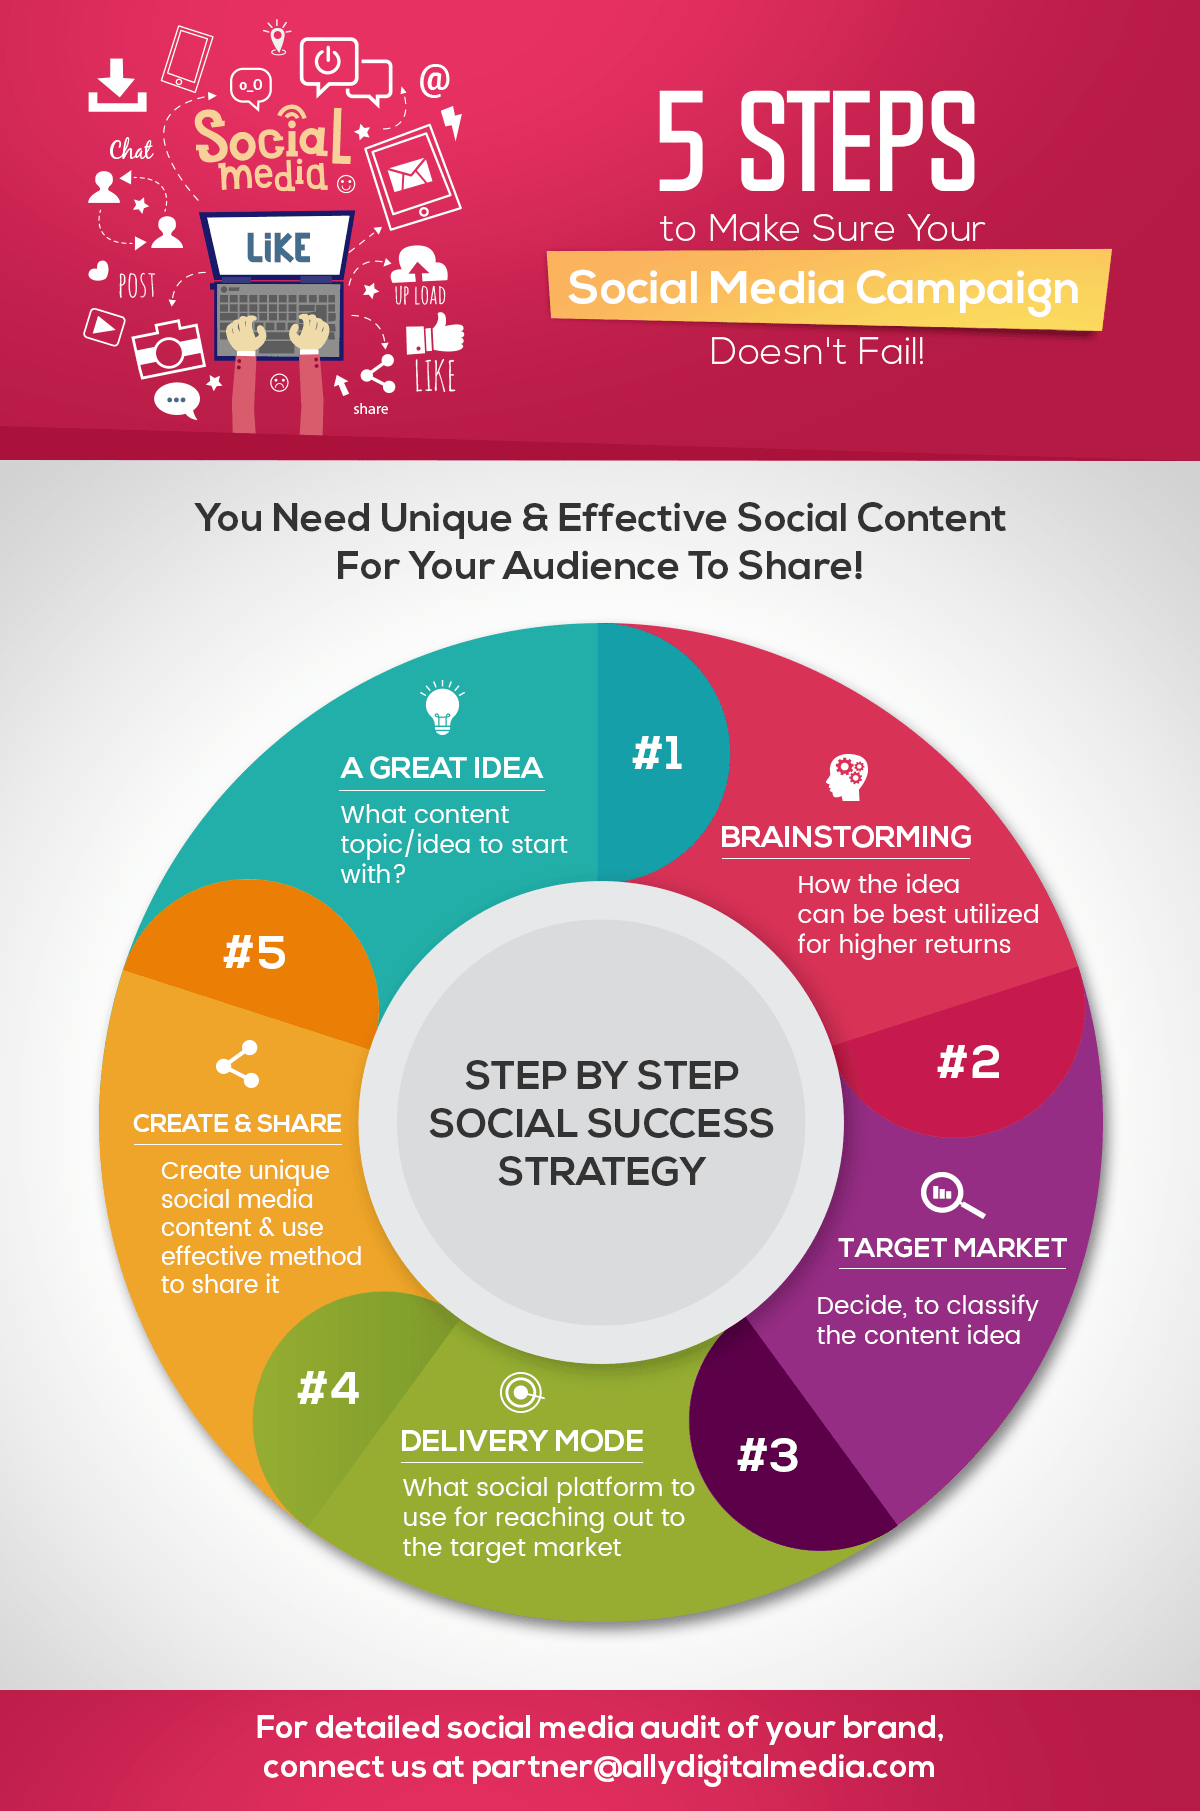 5 Steps To Make Sure Your Social Media Campaign Doesn't Fail Infographic